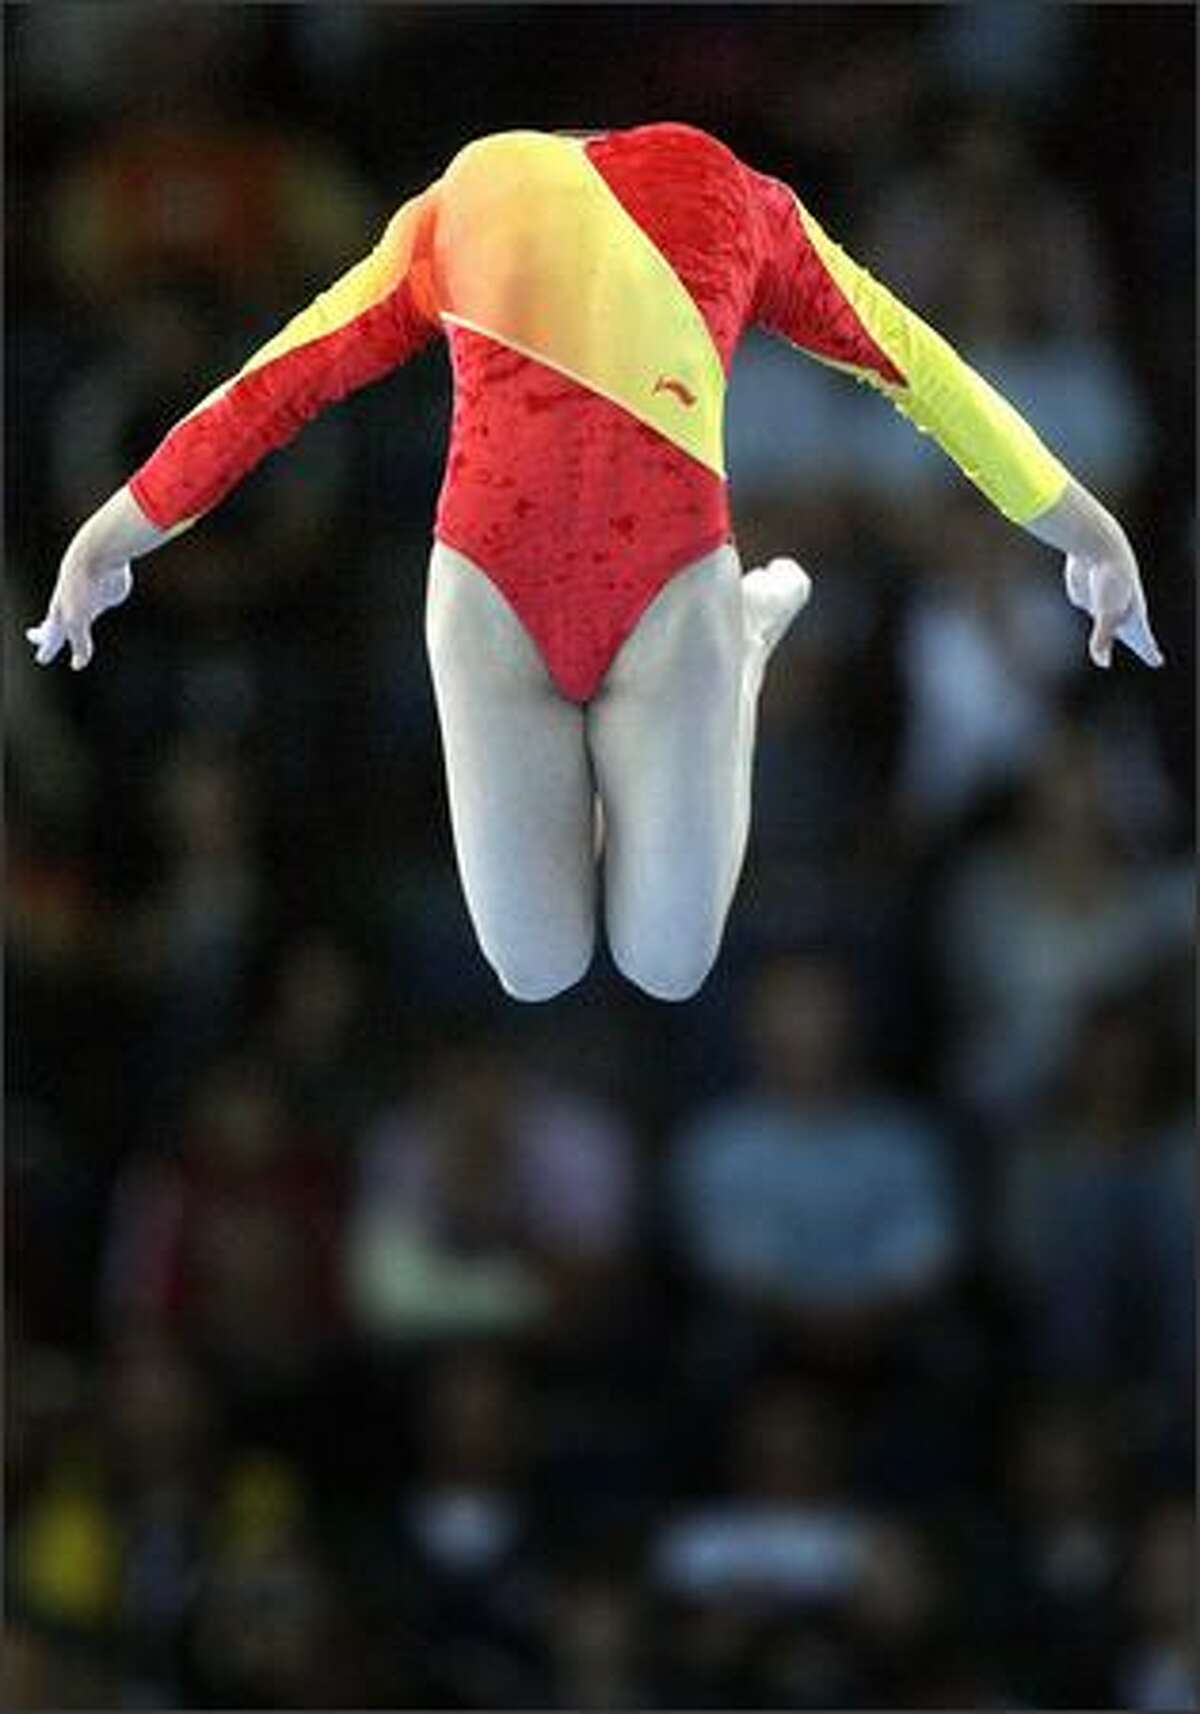 China's Fei Cheng competes on the beam during the women's team final of the Gymnastics World Championships in Stuttgart, southern Germany. (AP Photo/Michael Sohn)